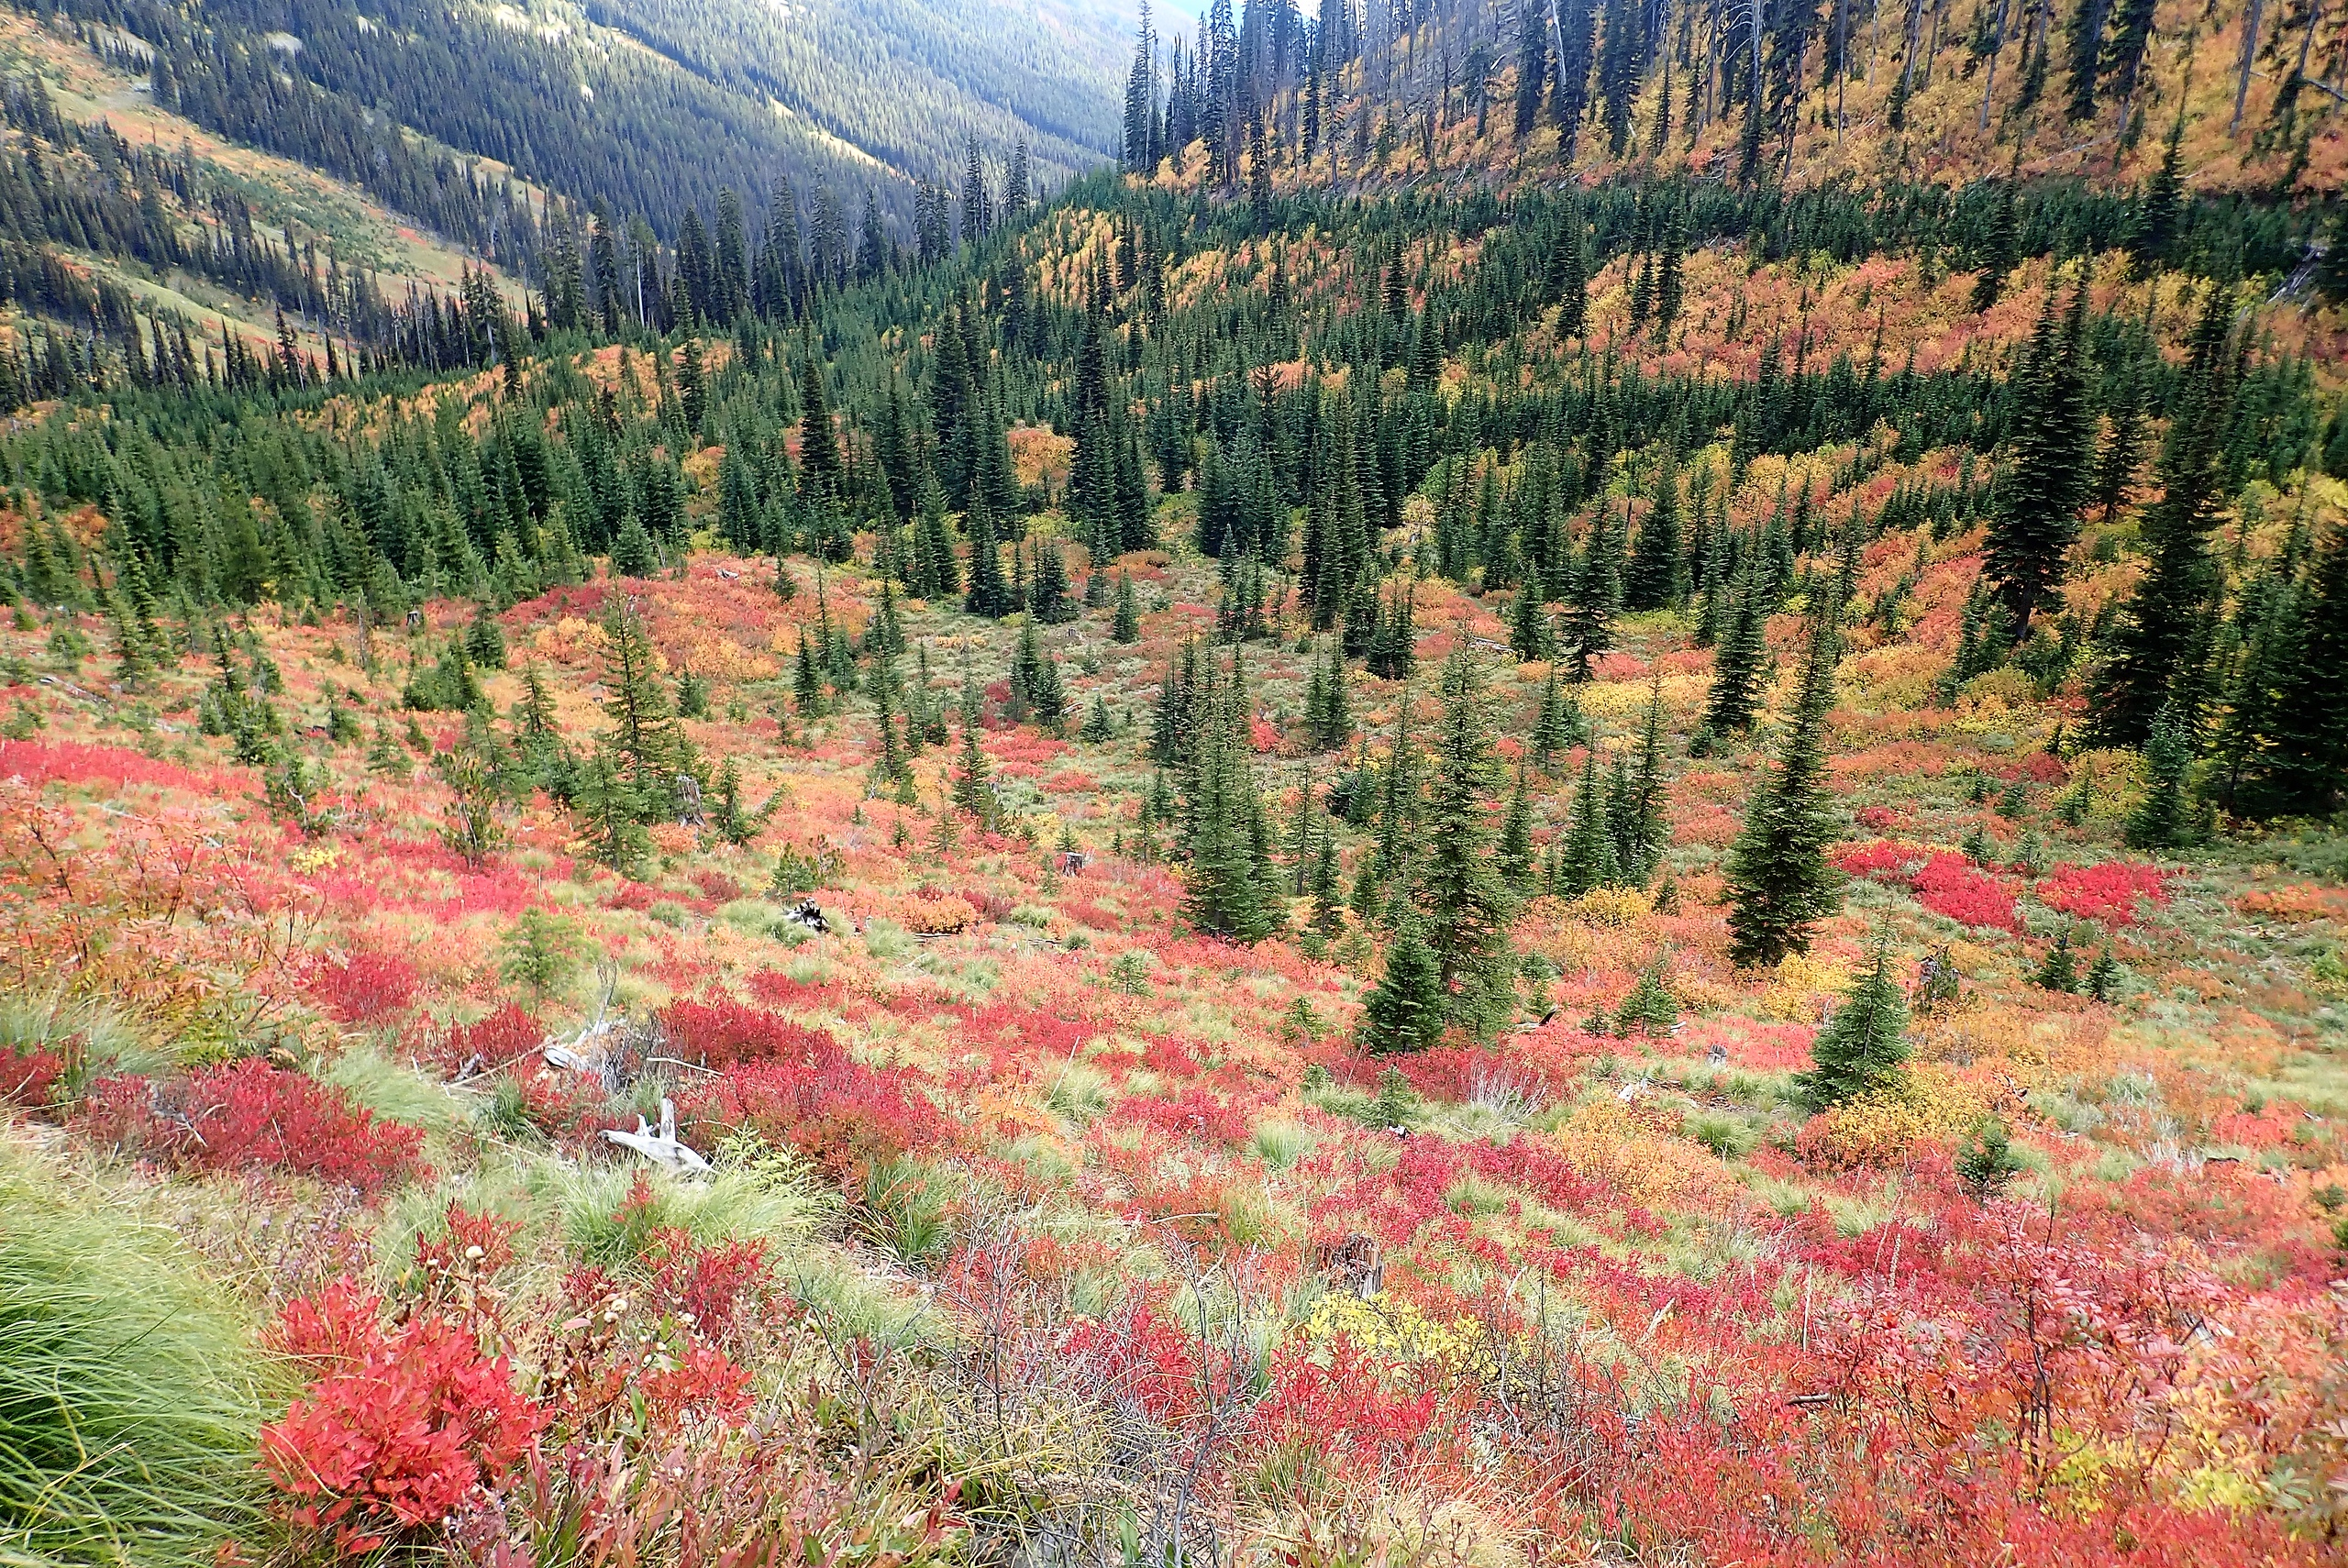 Fall colors over the pass